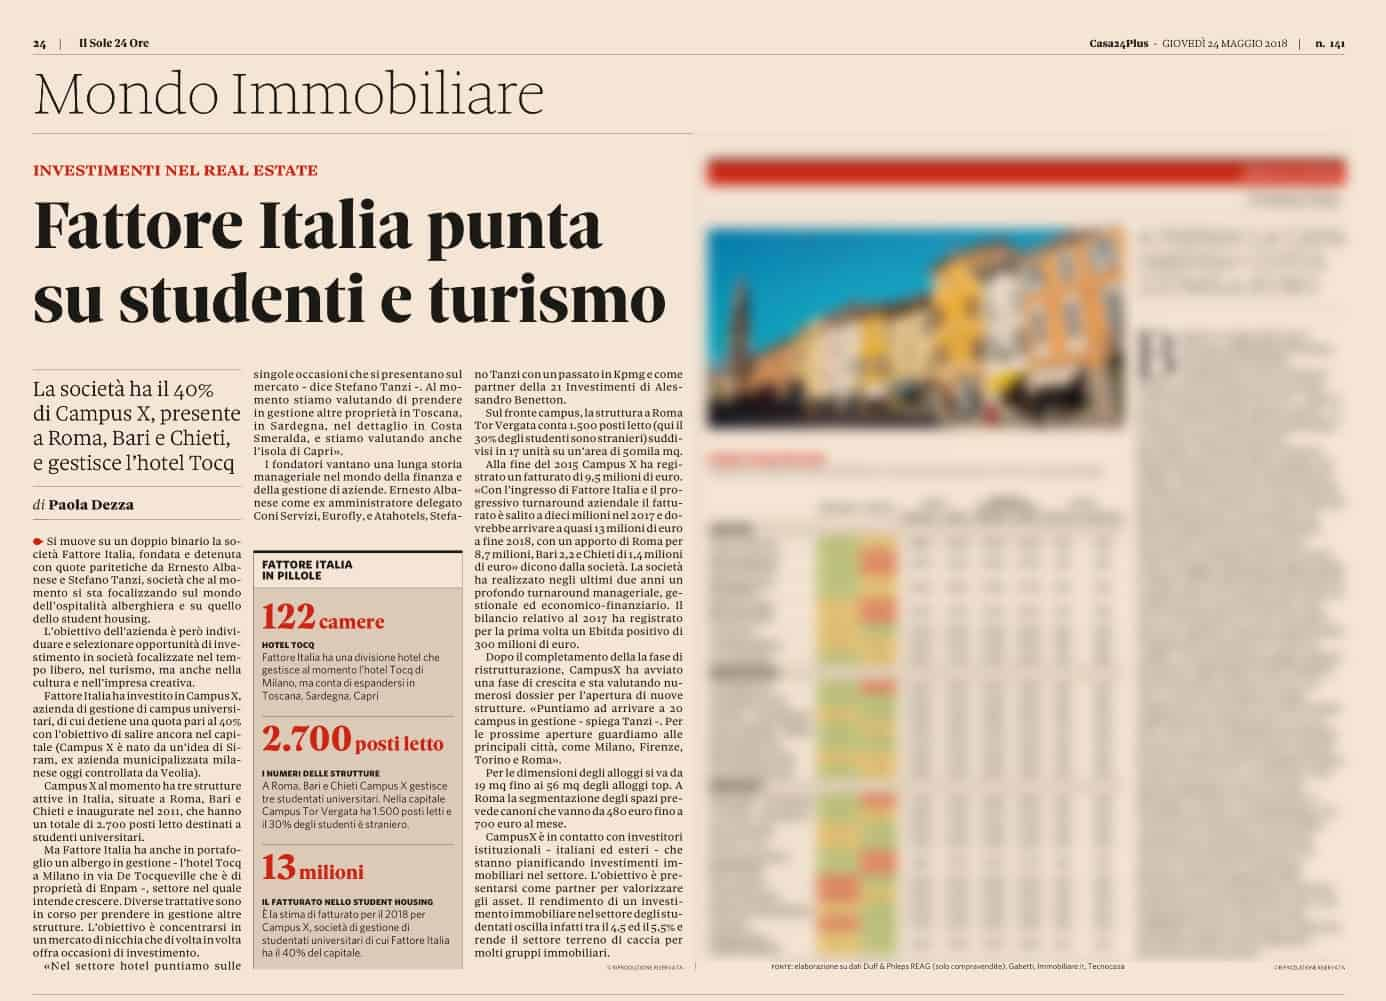 Fattore Italia focuses on students and tourism